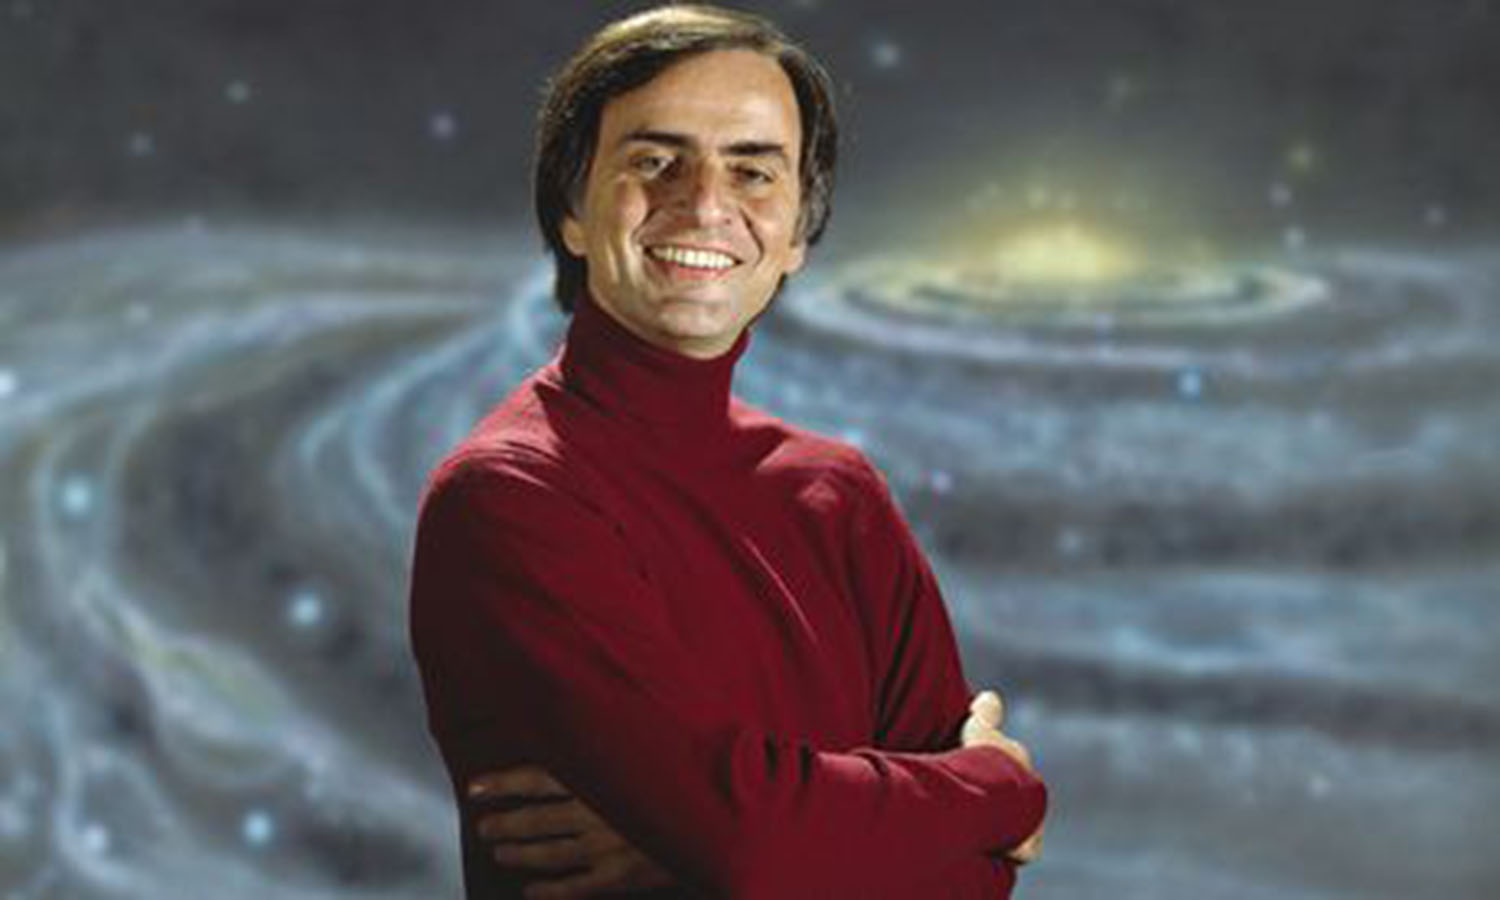 carl sagan How carl sagan's legacy and romance with space lives on bill nye follows in the footsteps of his former professor to strongly advocate for space exploration.